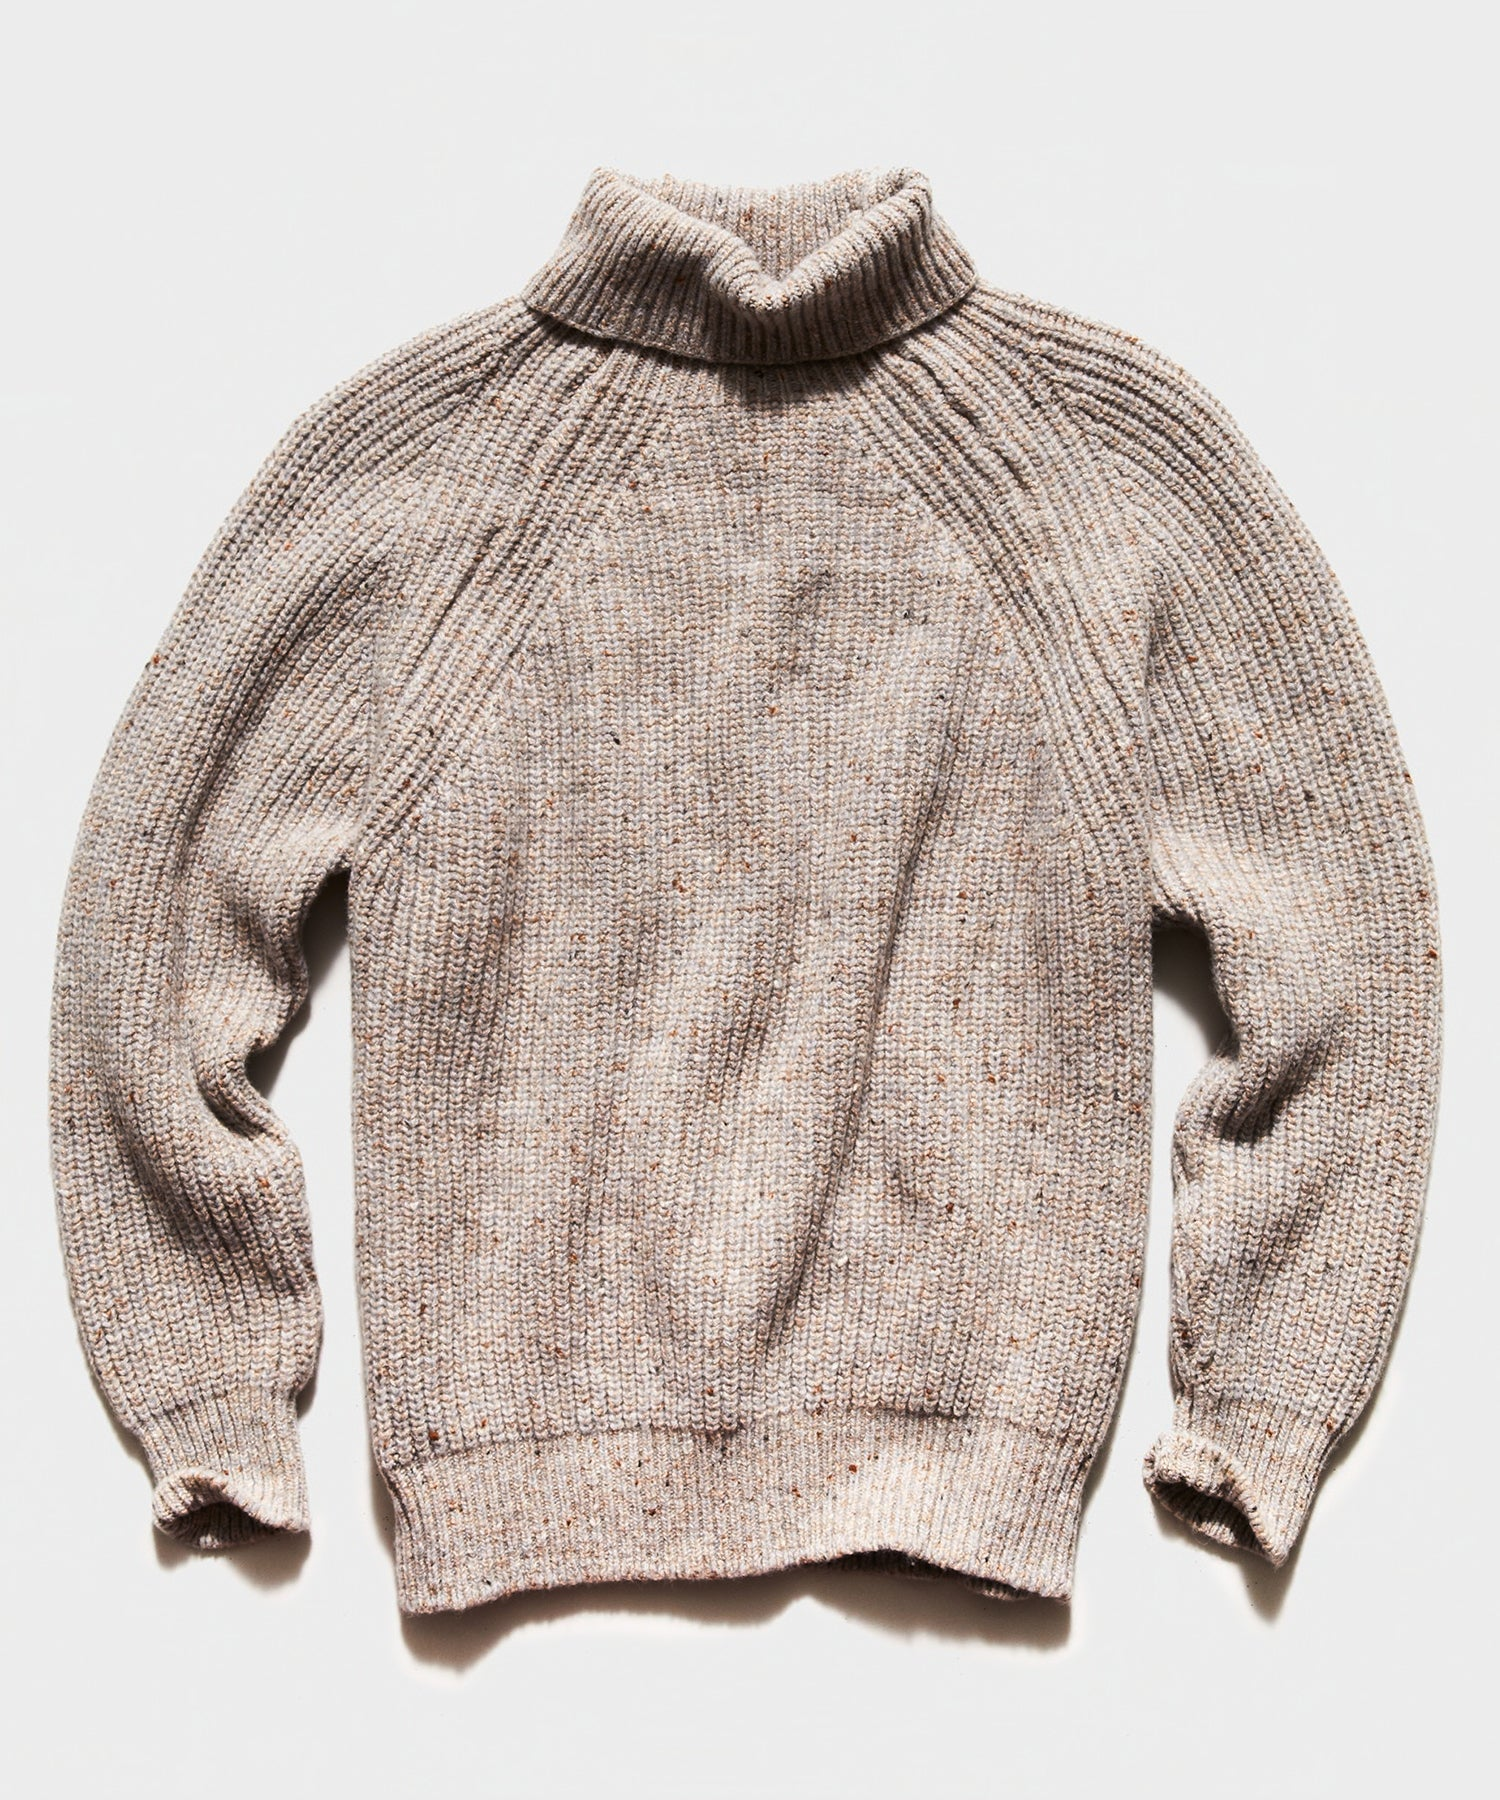 Inis Meain Classic Donegal Boatbuilder Rib Turtleneck in Beige